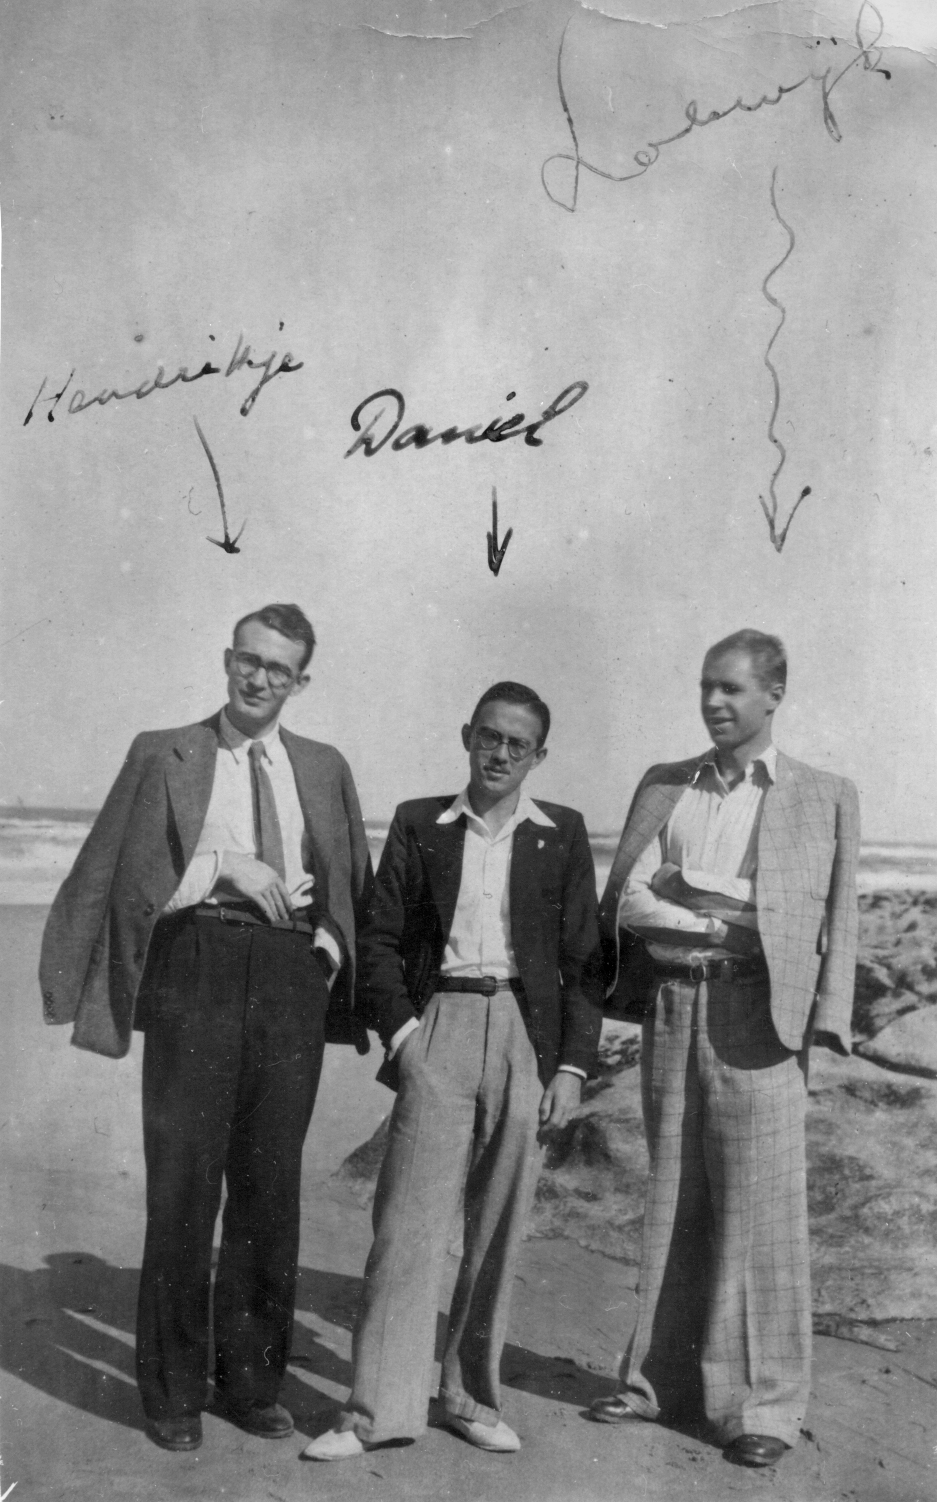 De Moulin (middle) with fellow 'Engelandvaarders' Jan Willem Gaillard and Lodewijk Parren at the beach Praia Das MaçÃs, Portugal, 1943. Het Utrechts Archief